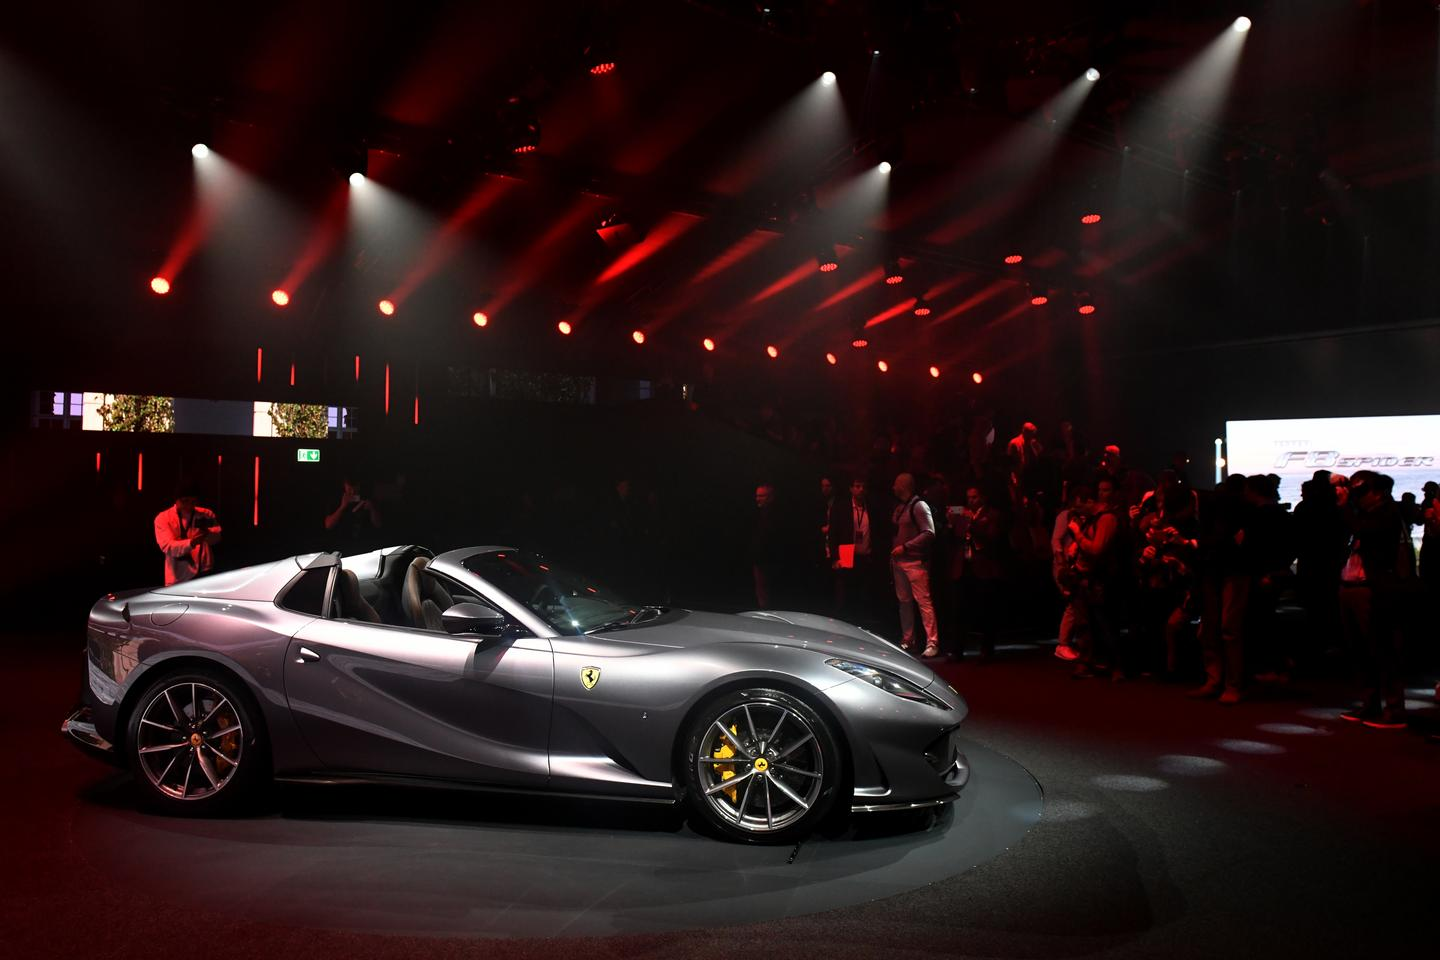 The 812 GTS launch party